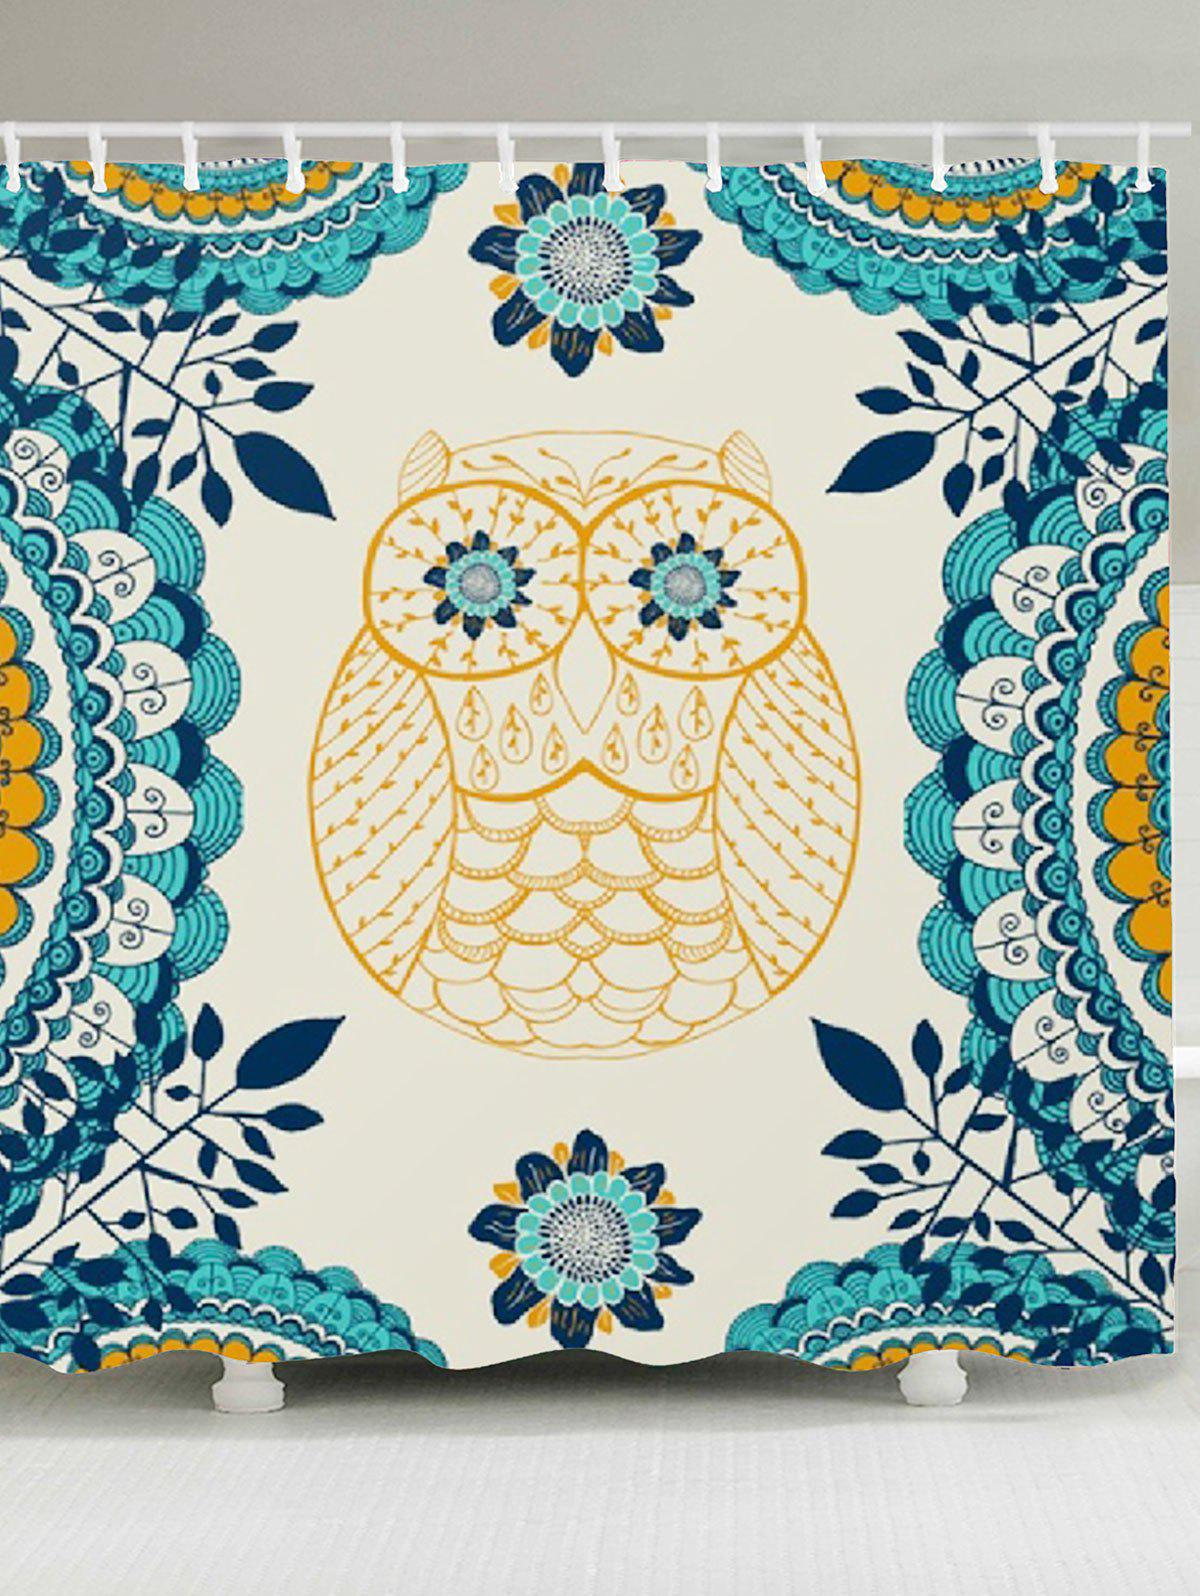 Waterproof Leaves Owl Printed Shower Curtain - COLORFUL W79 INCH * L71 INCH